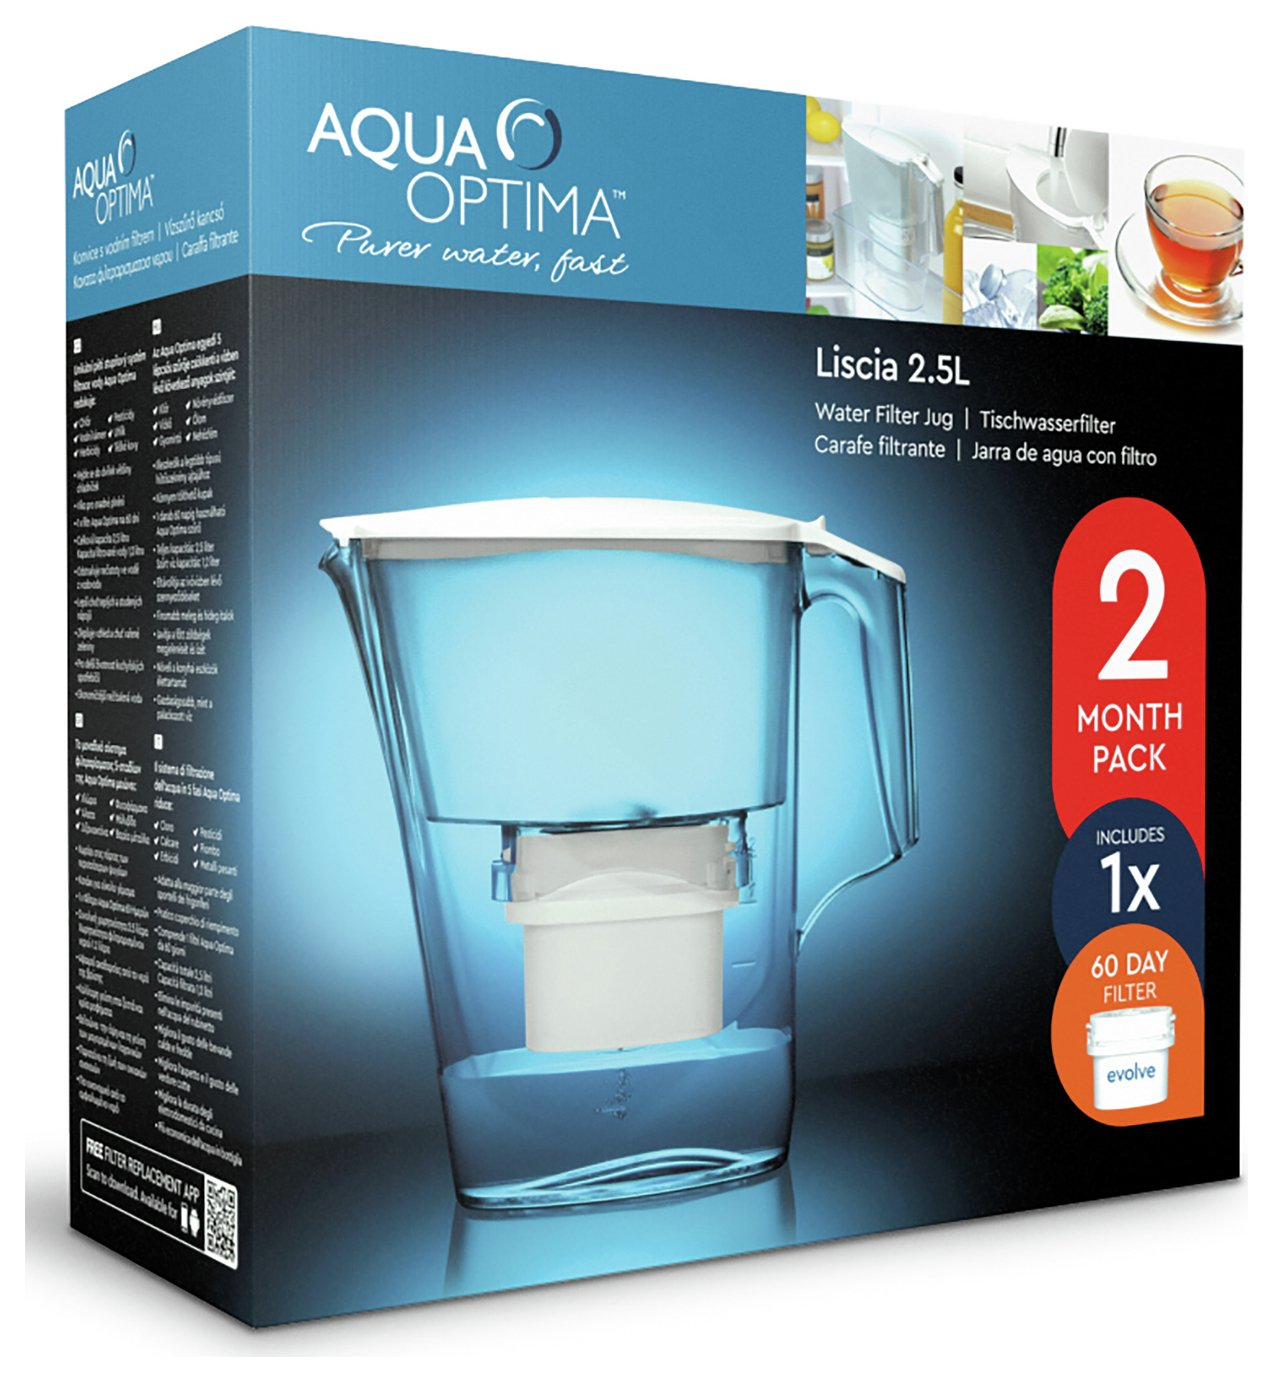 Image of Aqua Optima - Liscia White Jug with Cartridge - Pack of 1